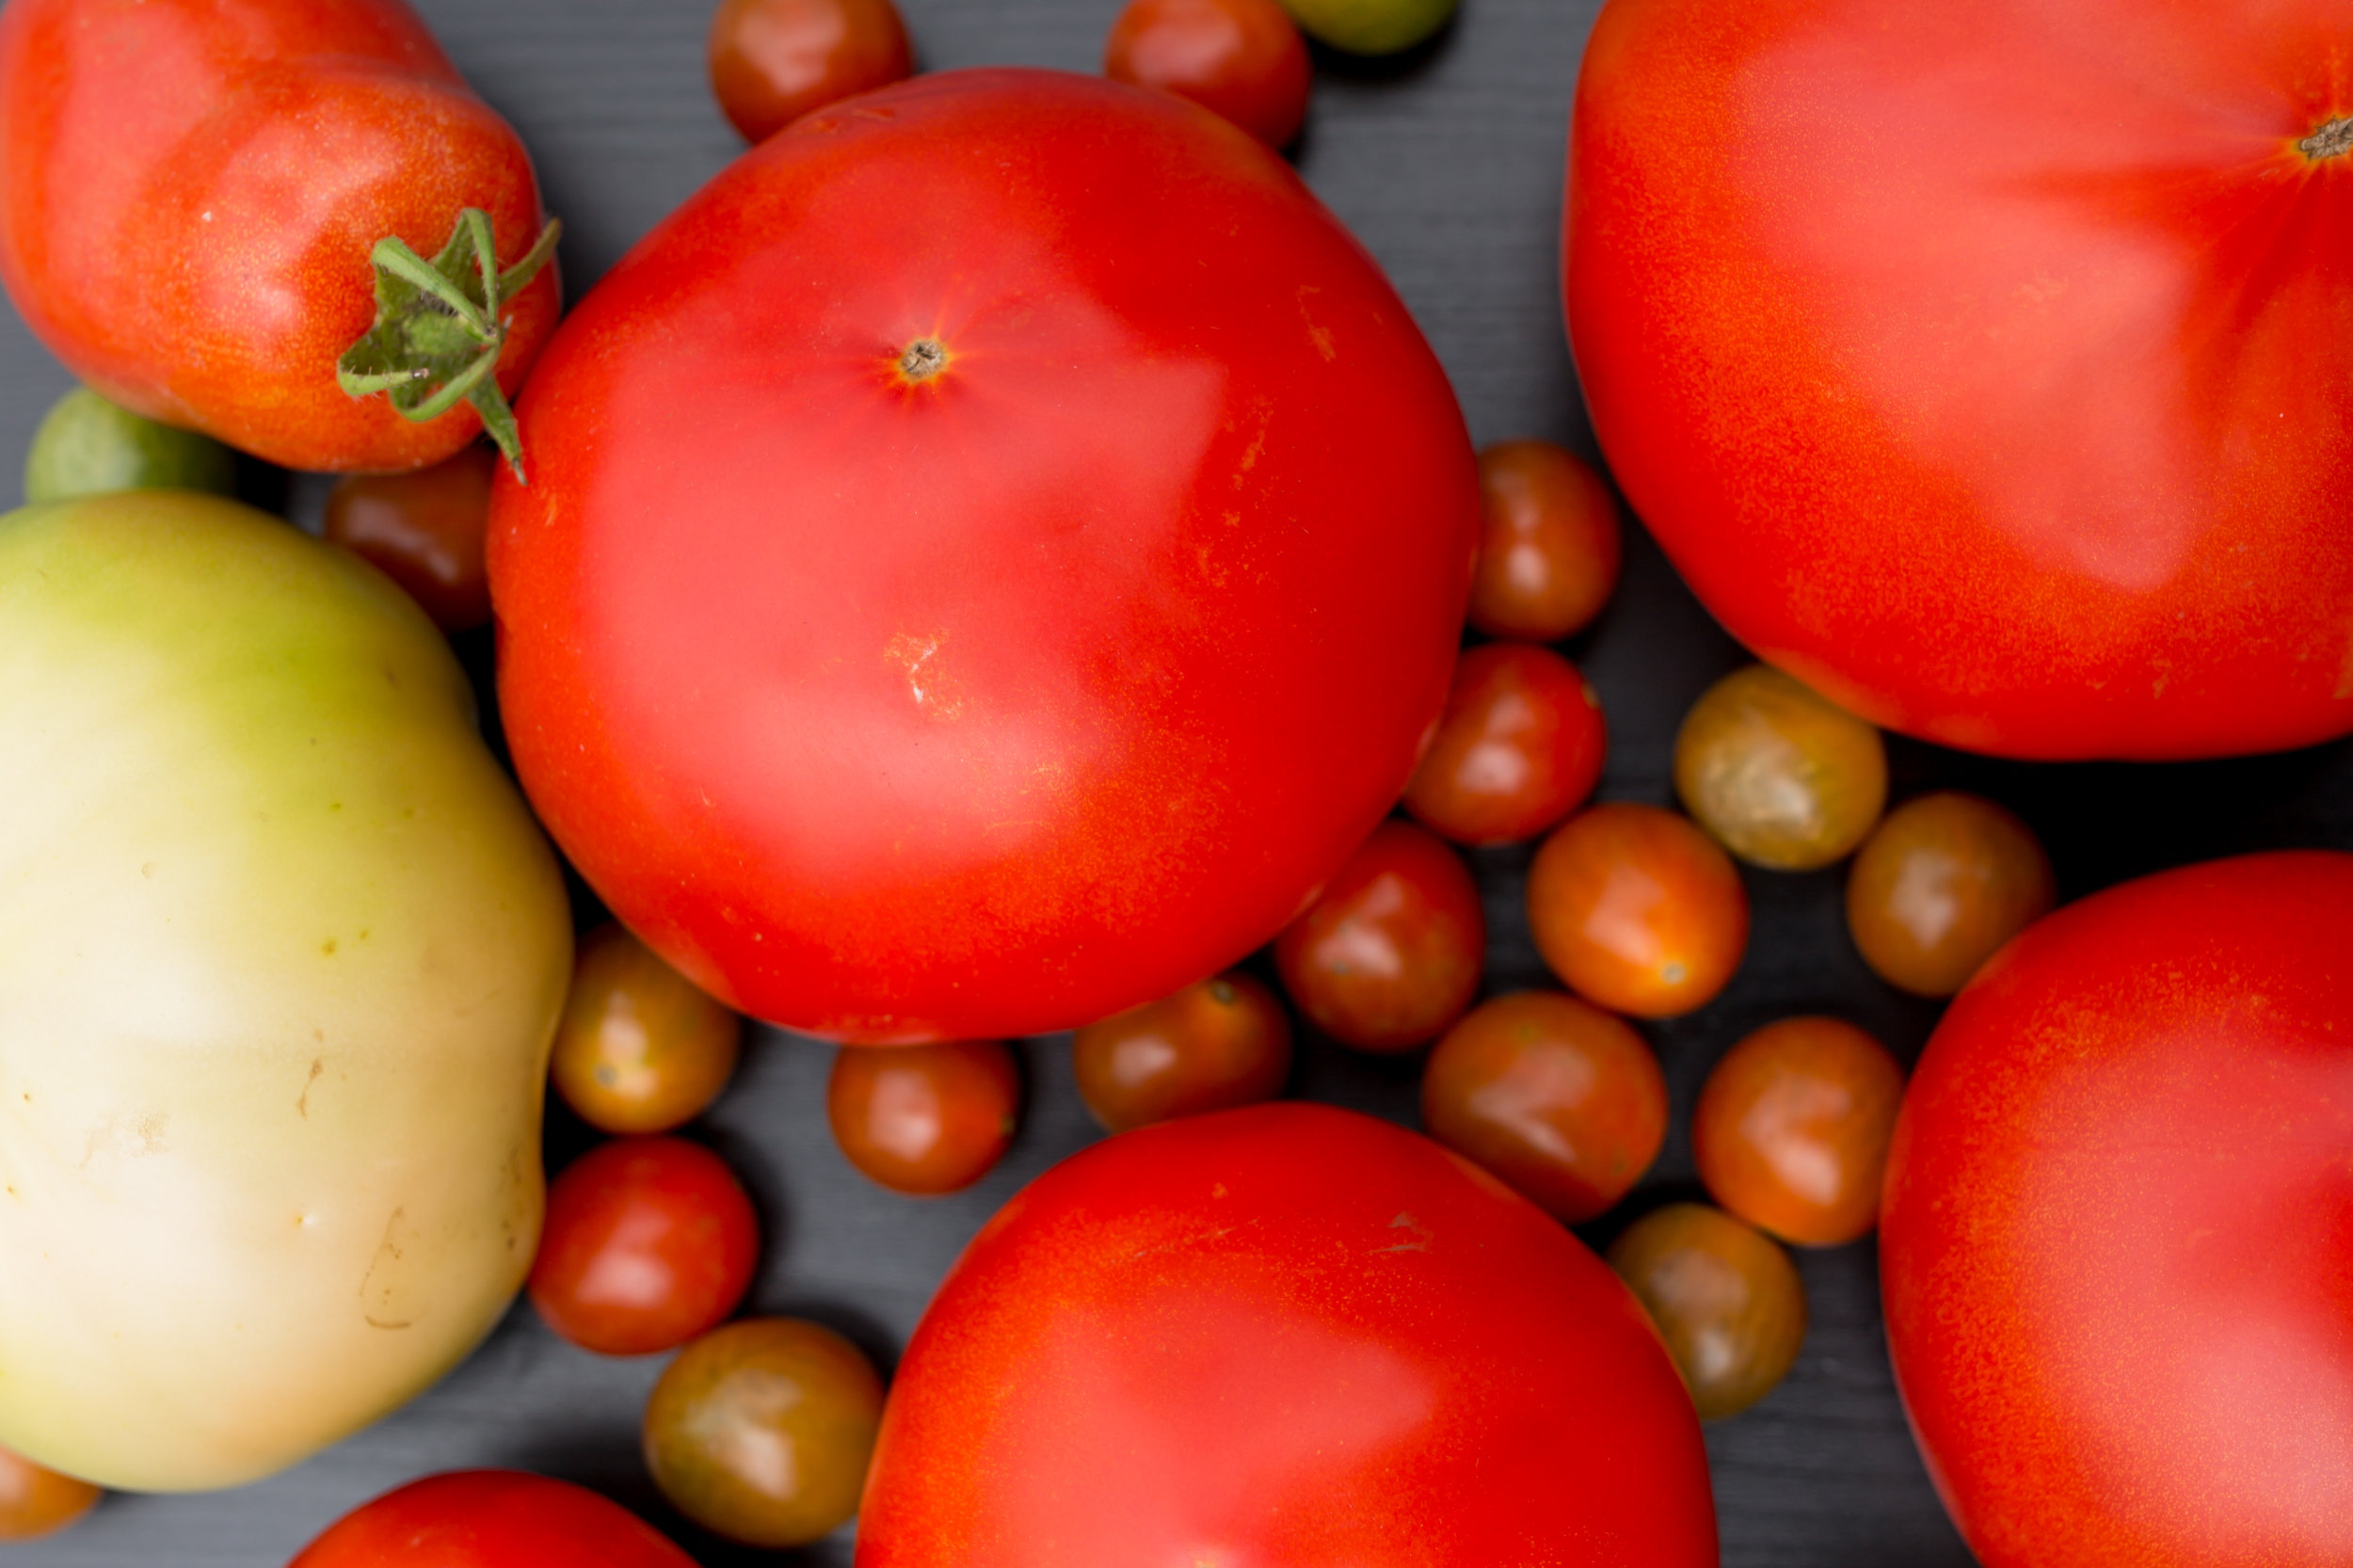 Never refrigerate fresh tomatoes - Store at room temperature, out of direct sunlight.